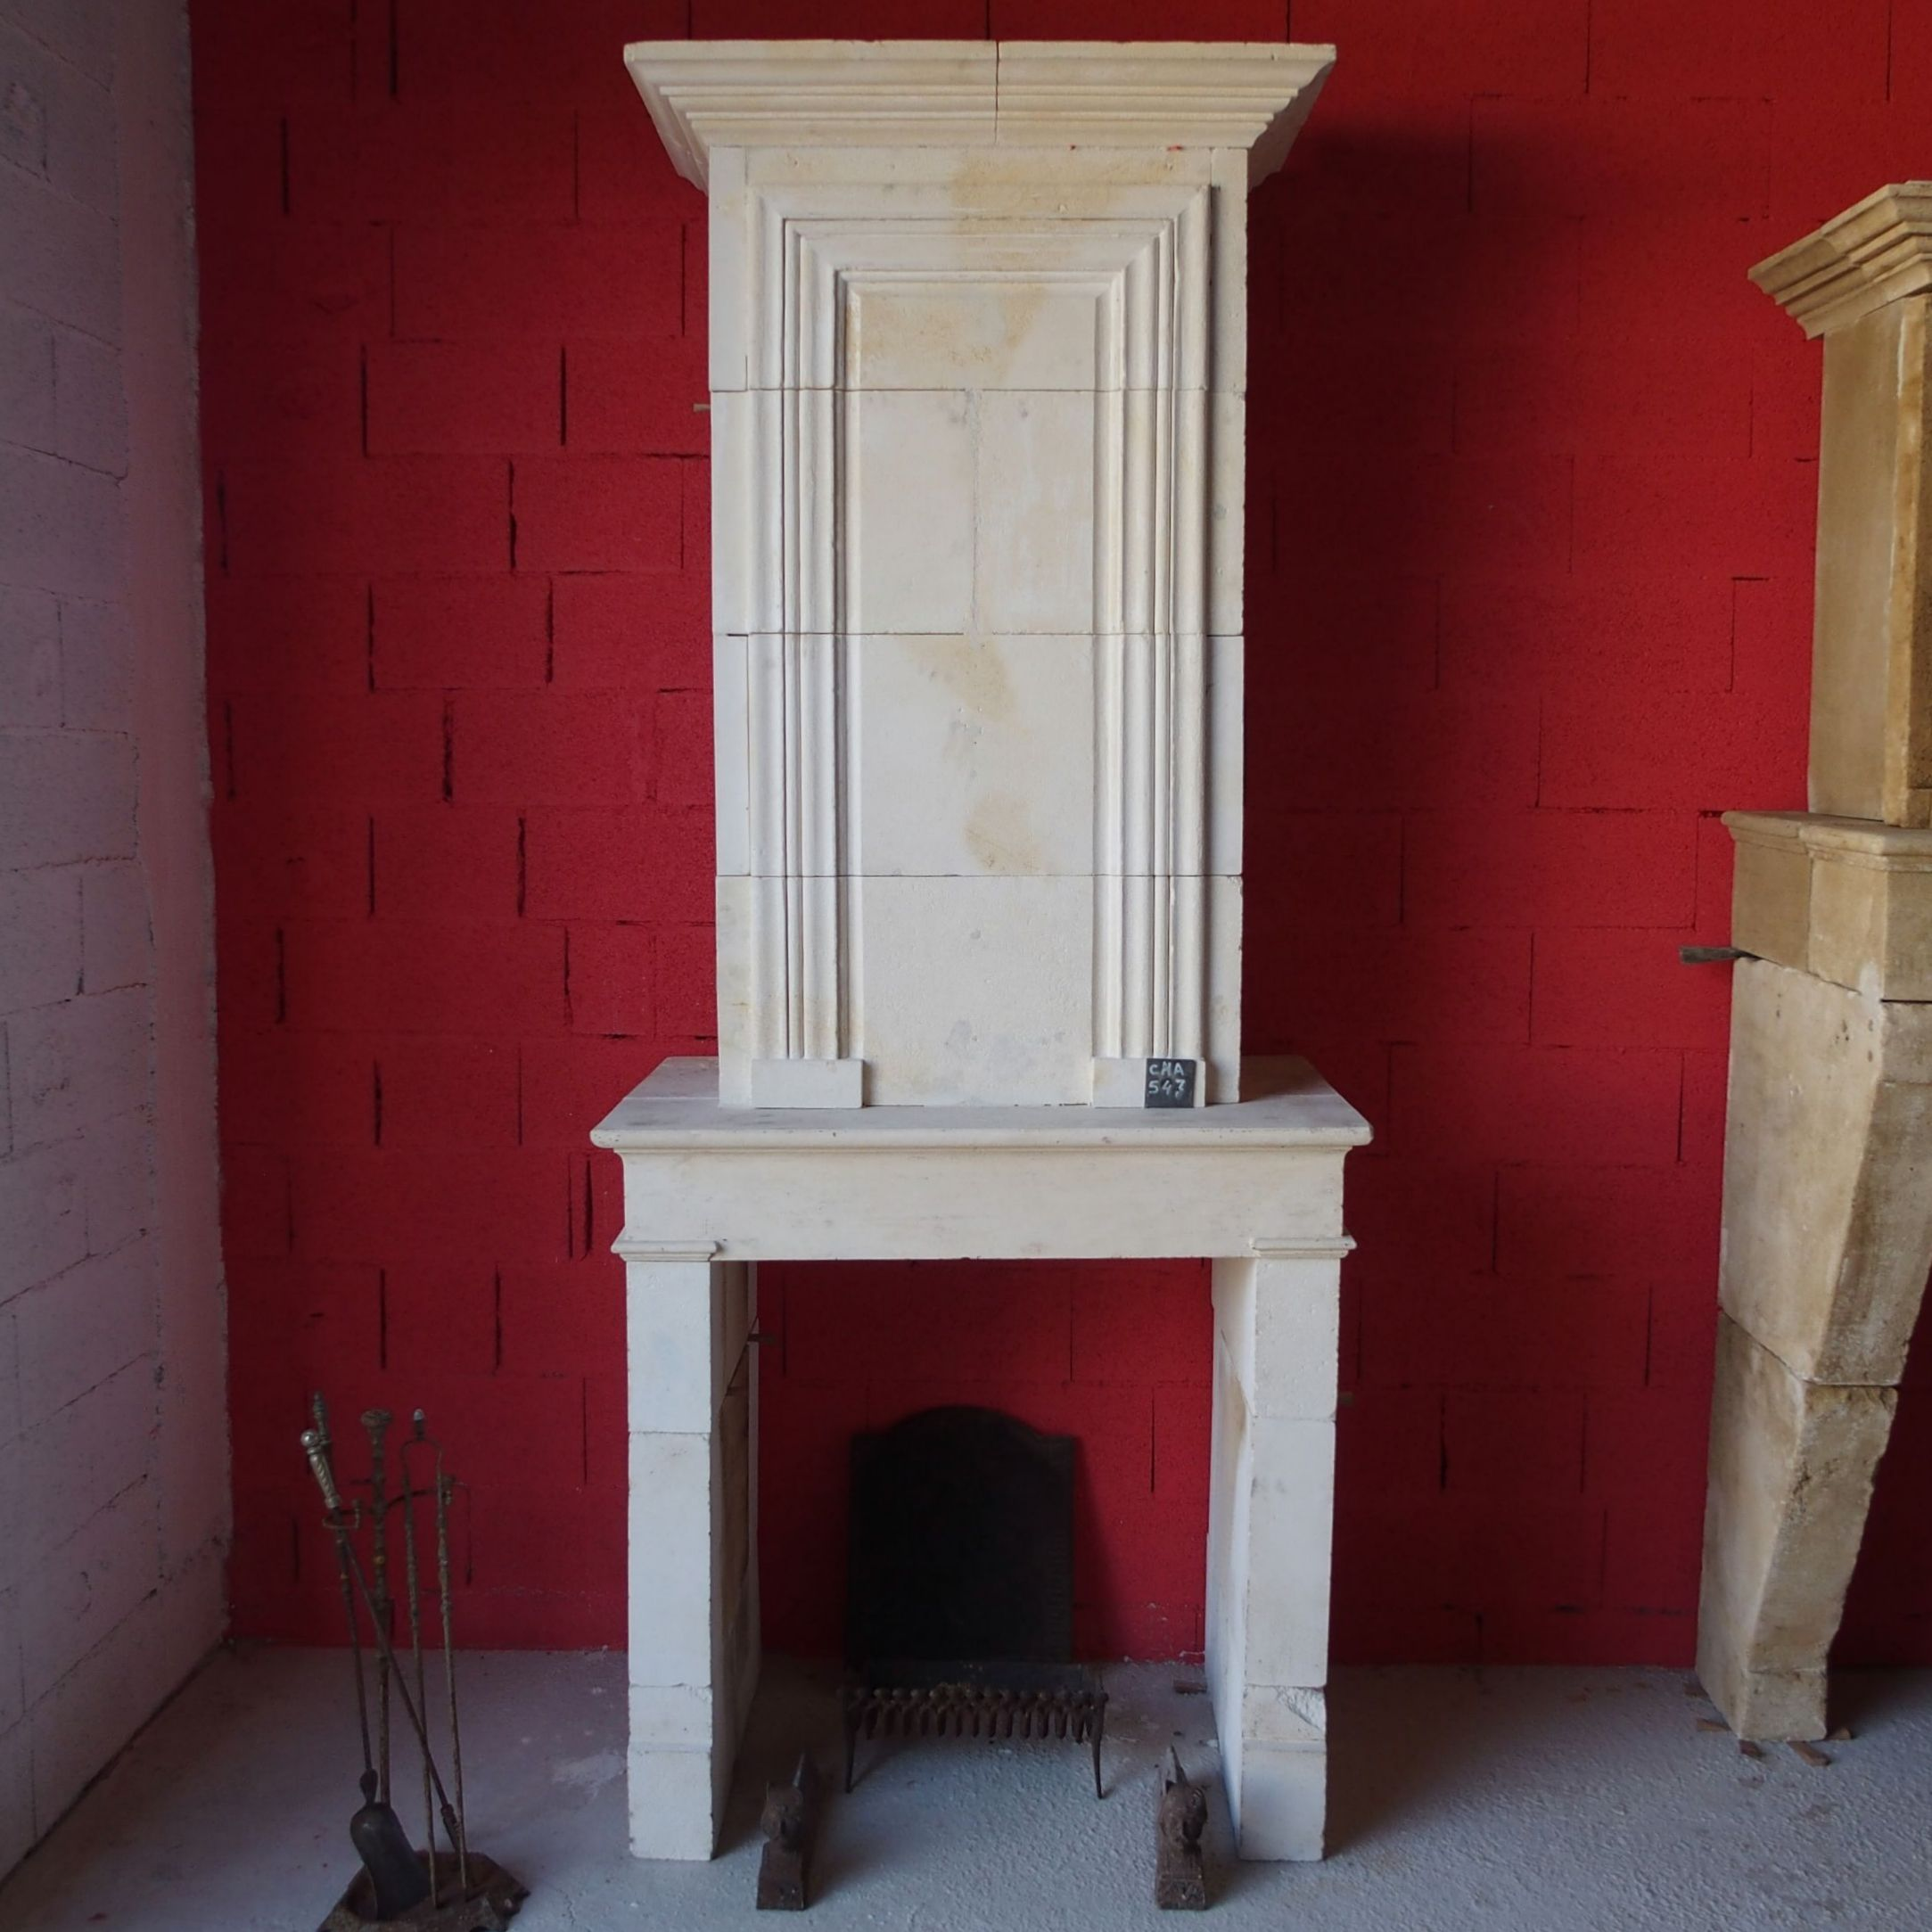 Old fireplace made of white stone in a perrfect color  - old  antique 19th century fireplace.